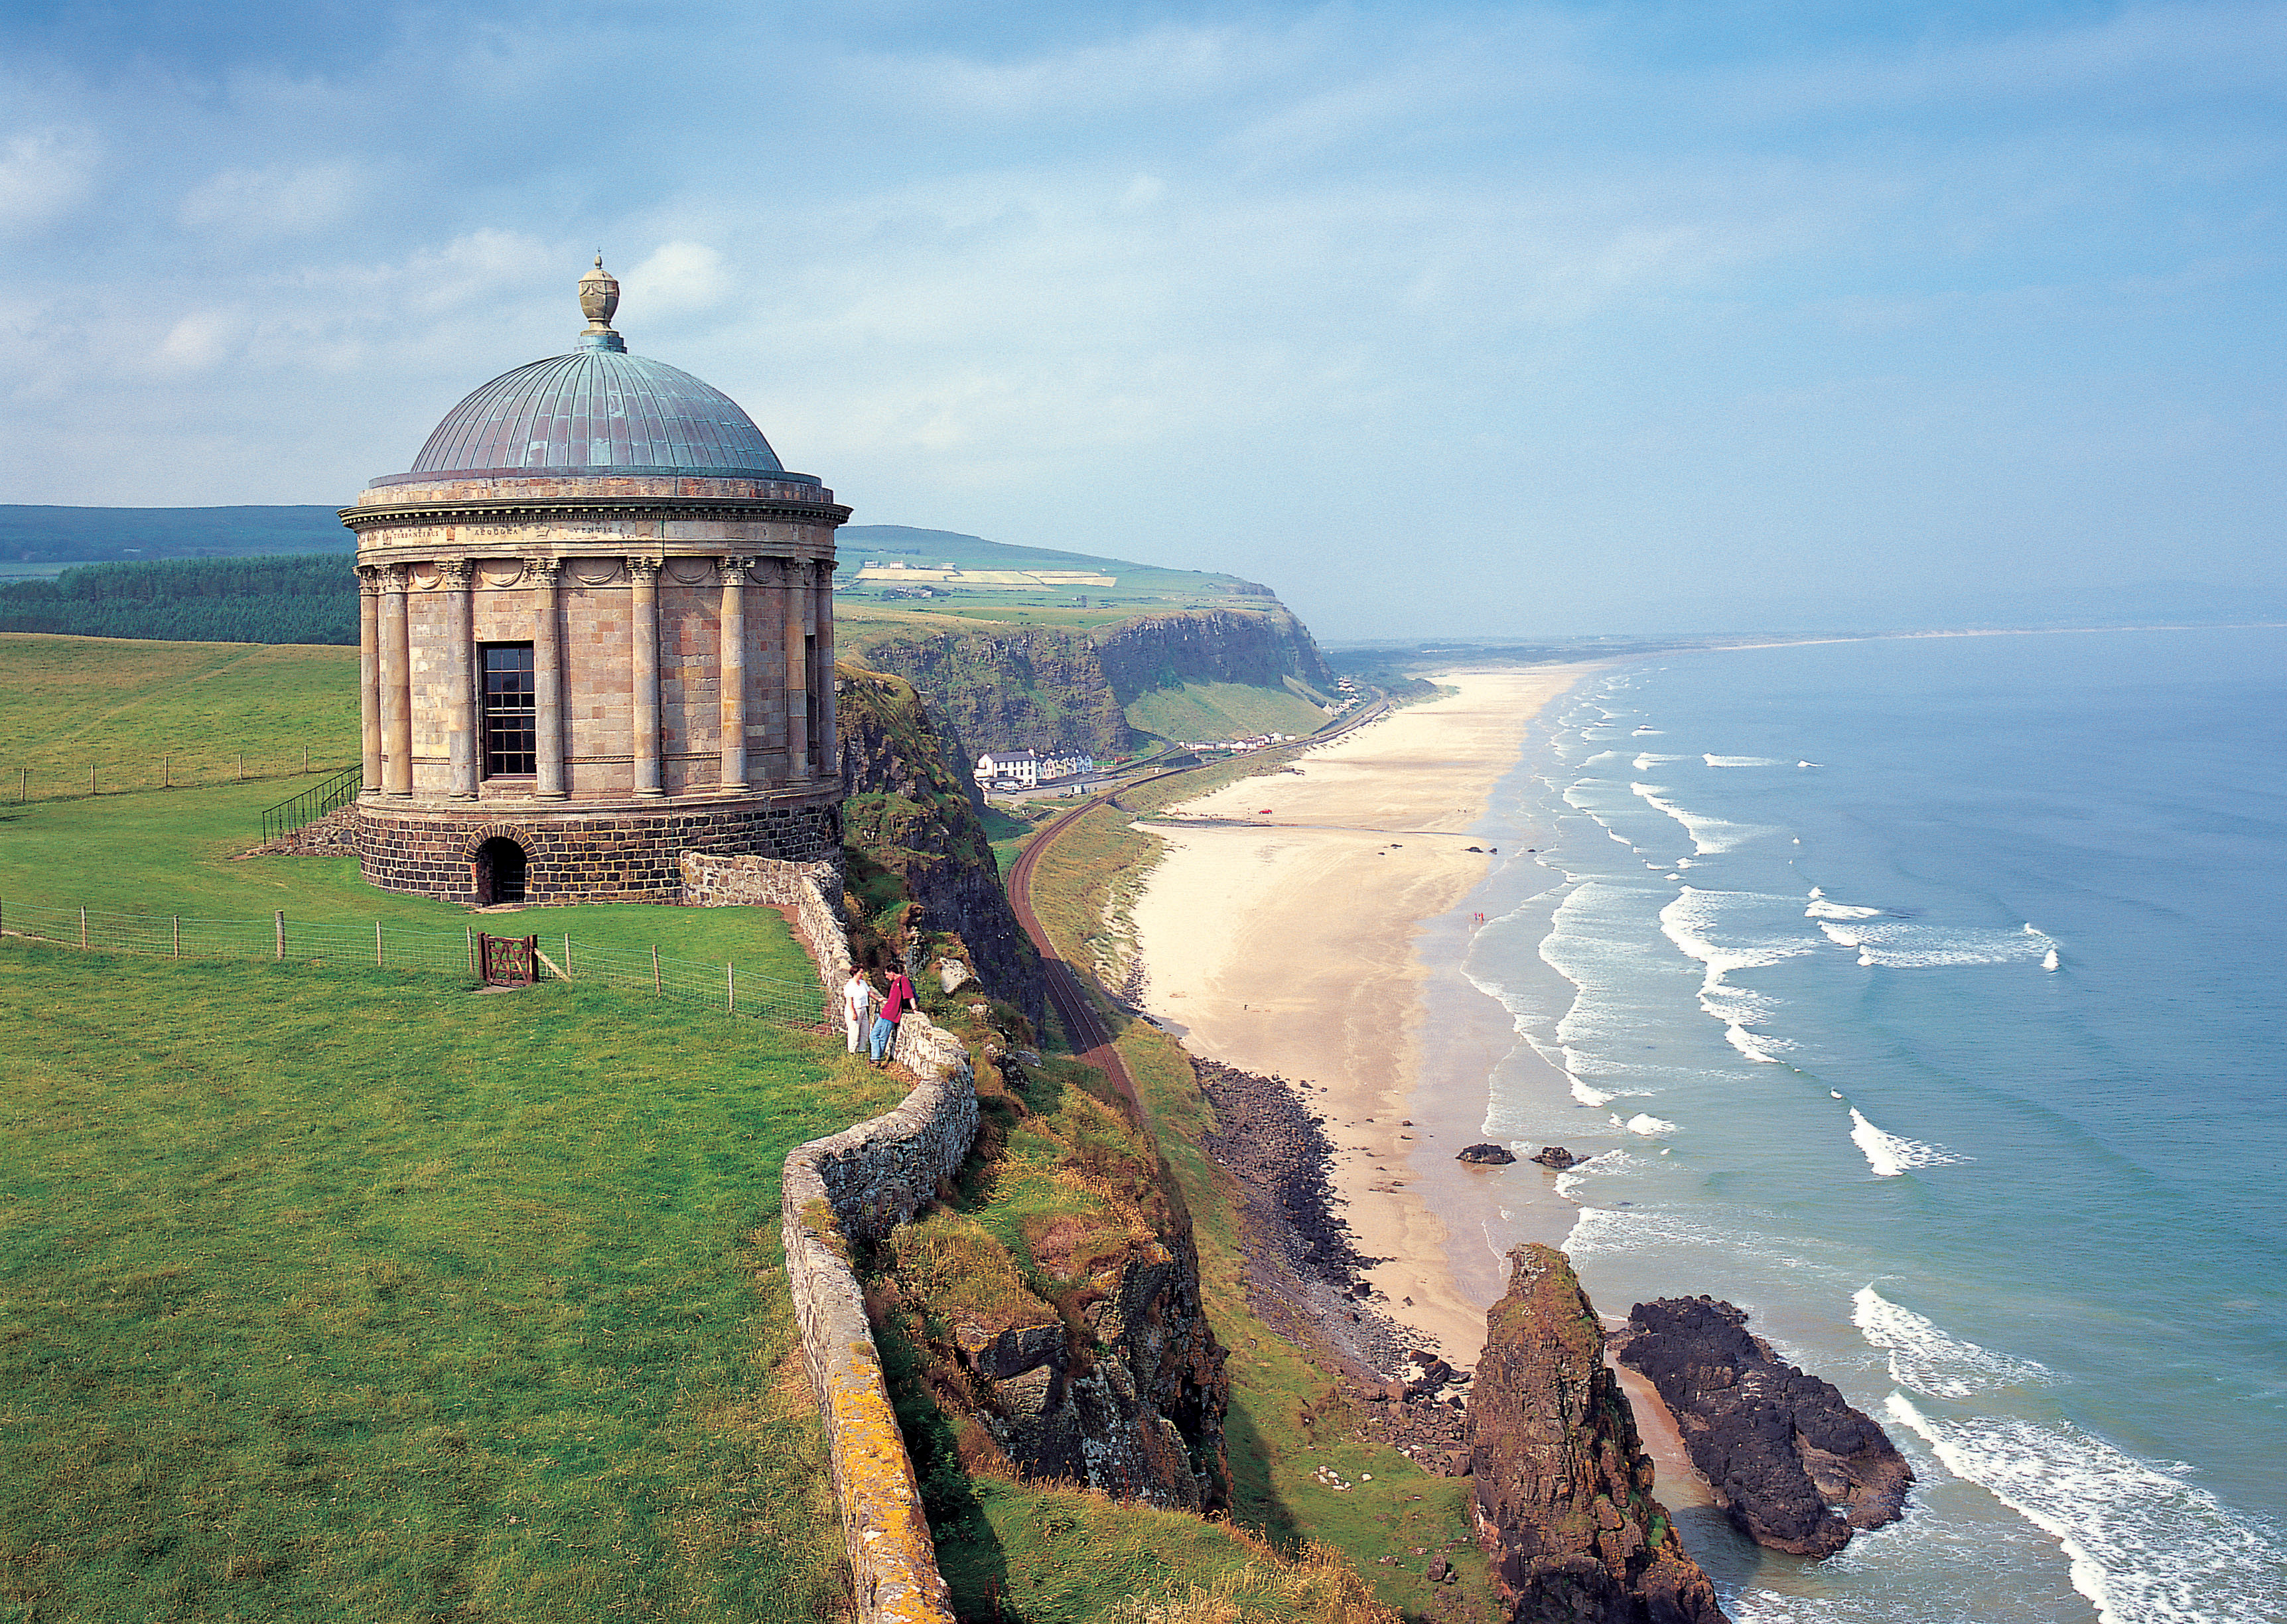 northern ireland: five fab game of thrones locations